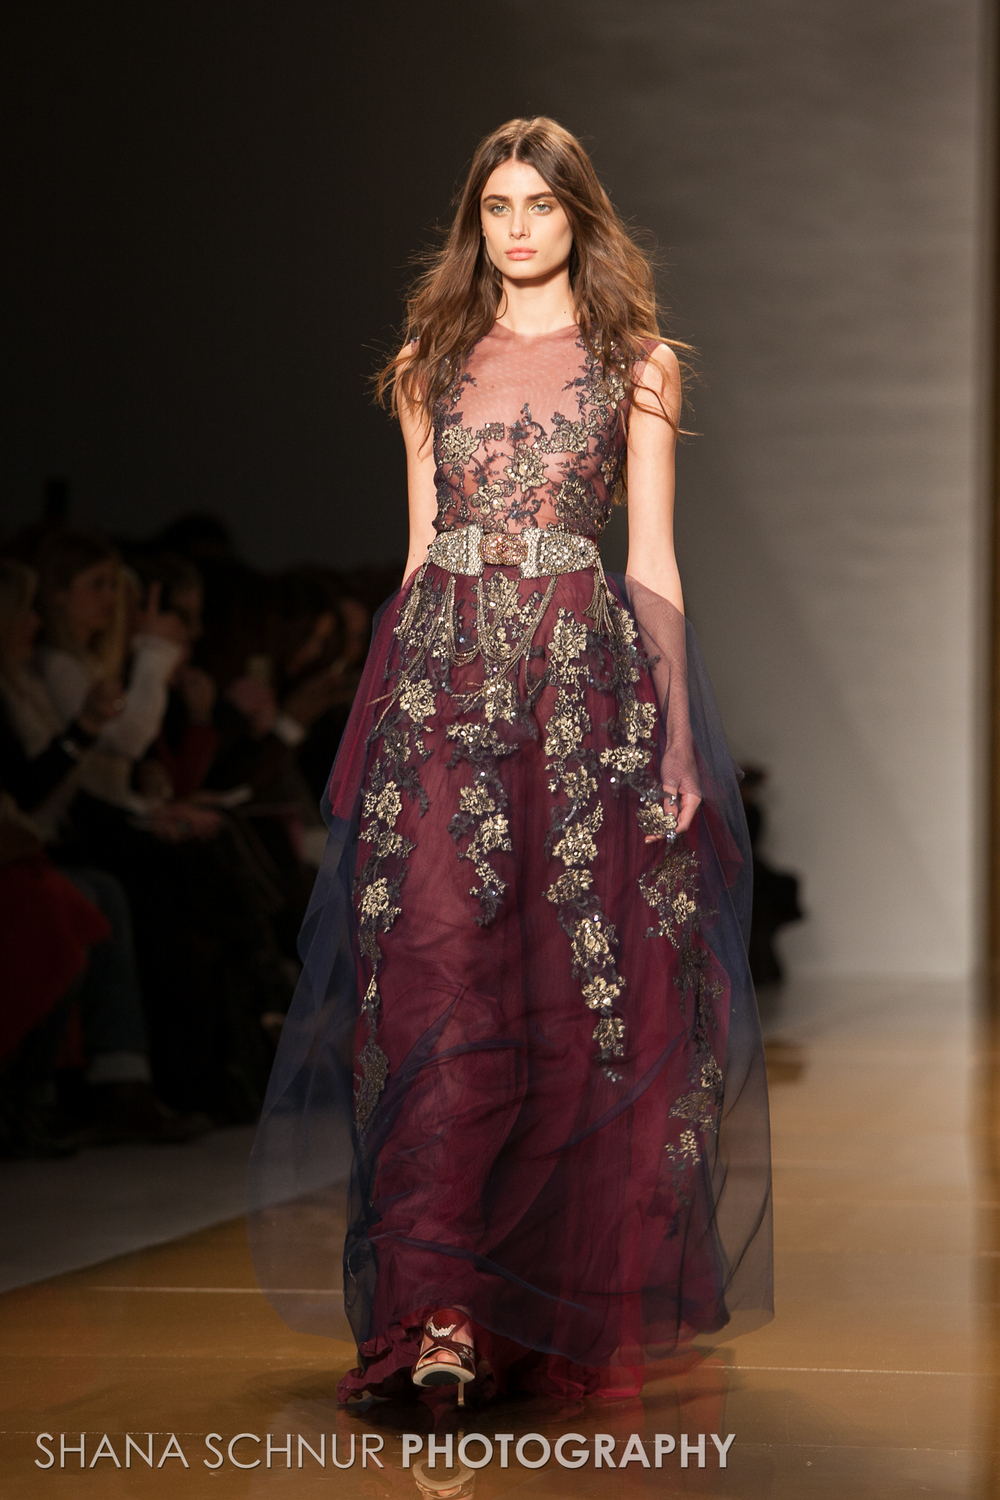 Reem-Acra-New-York-Fashion-Week-Fall-Winter-2015-Shana-Schnur-Photography-IMG_9862-070.jpg